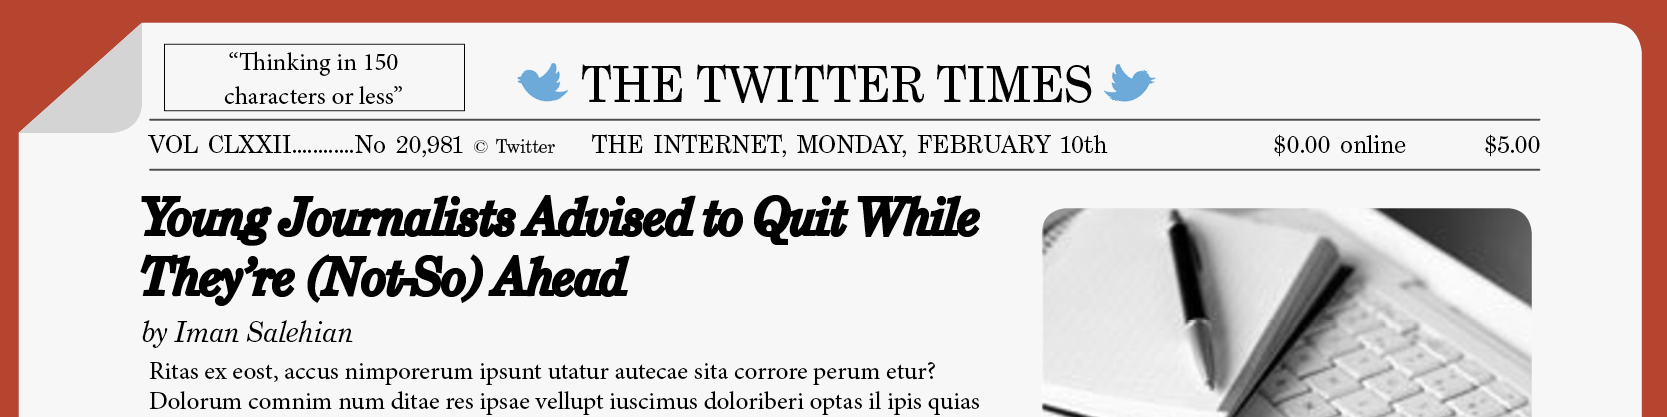 The Twitter Times